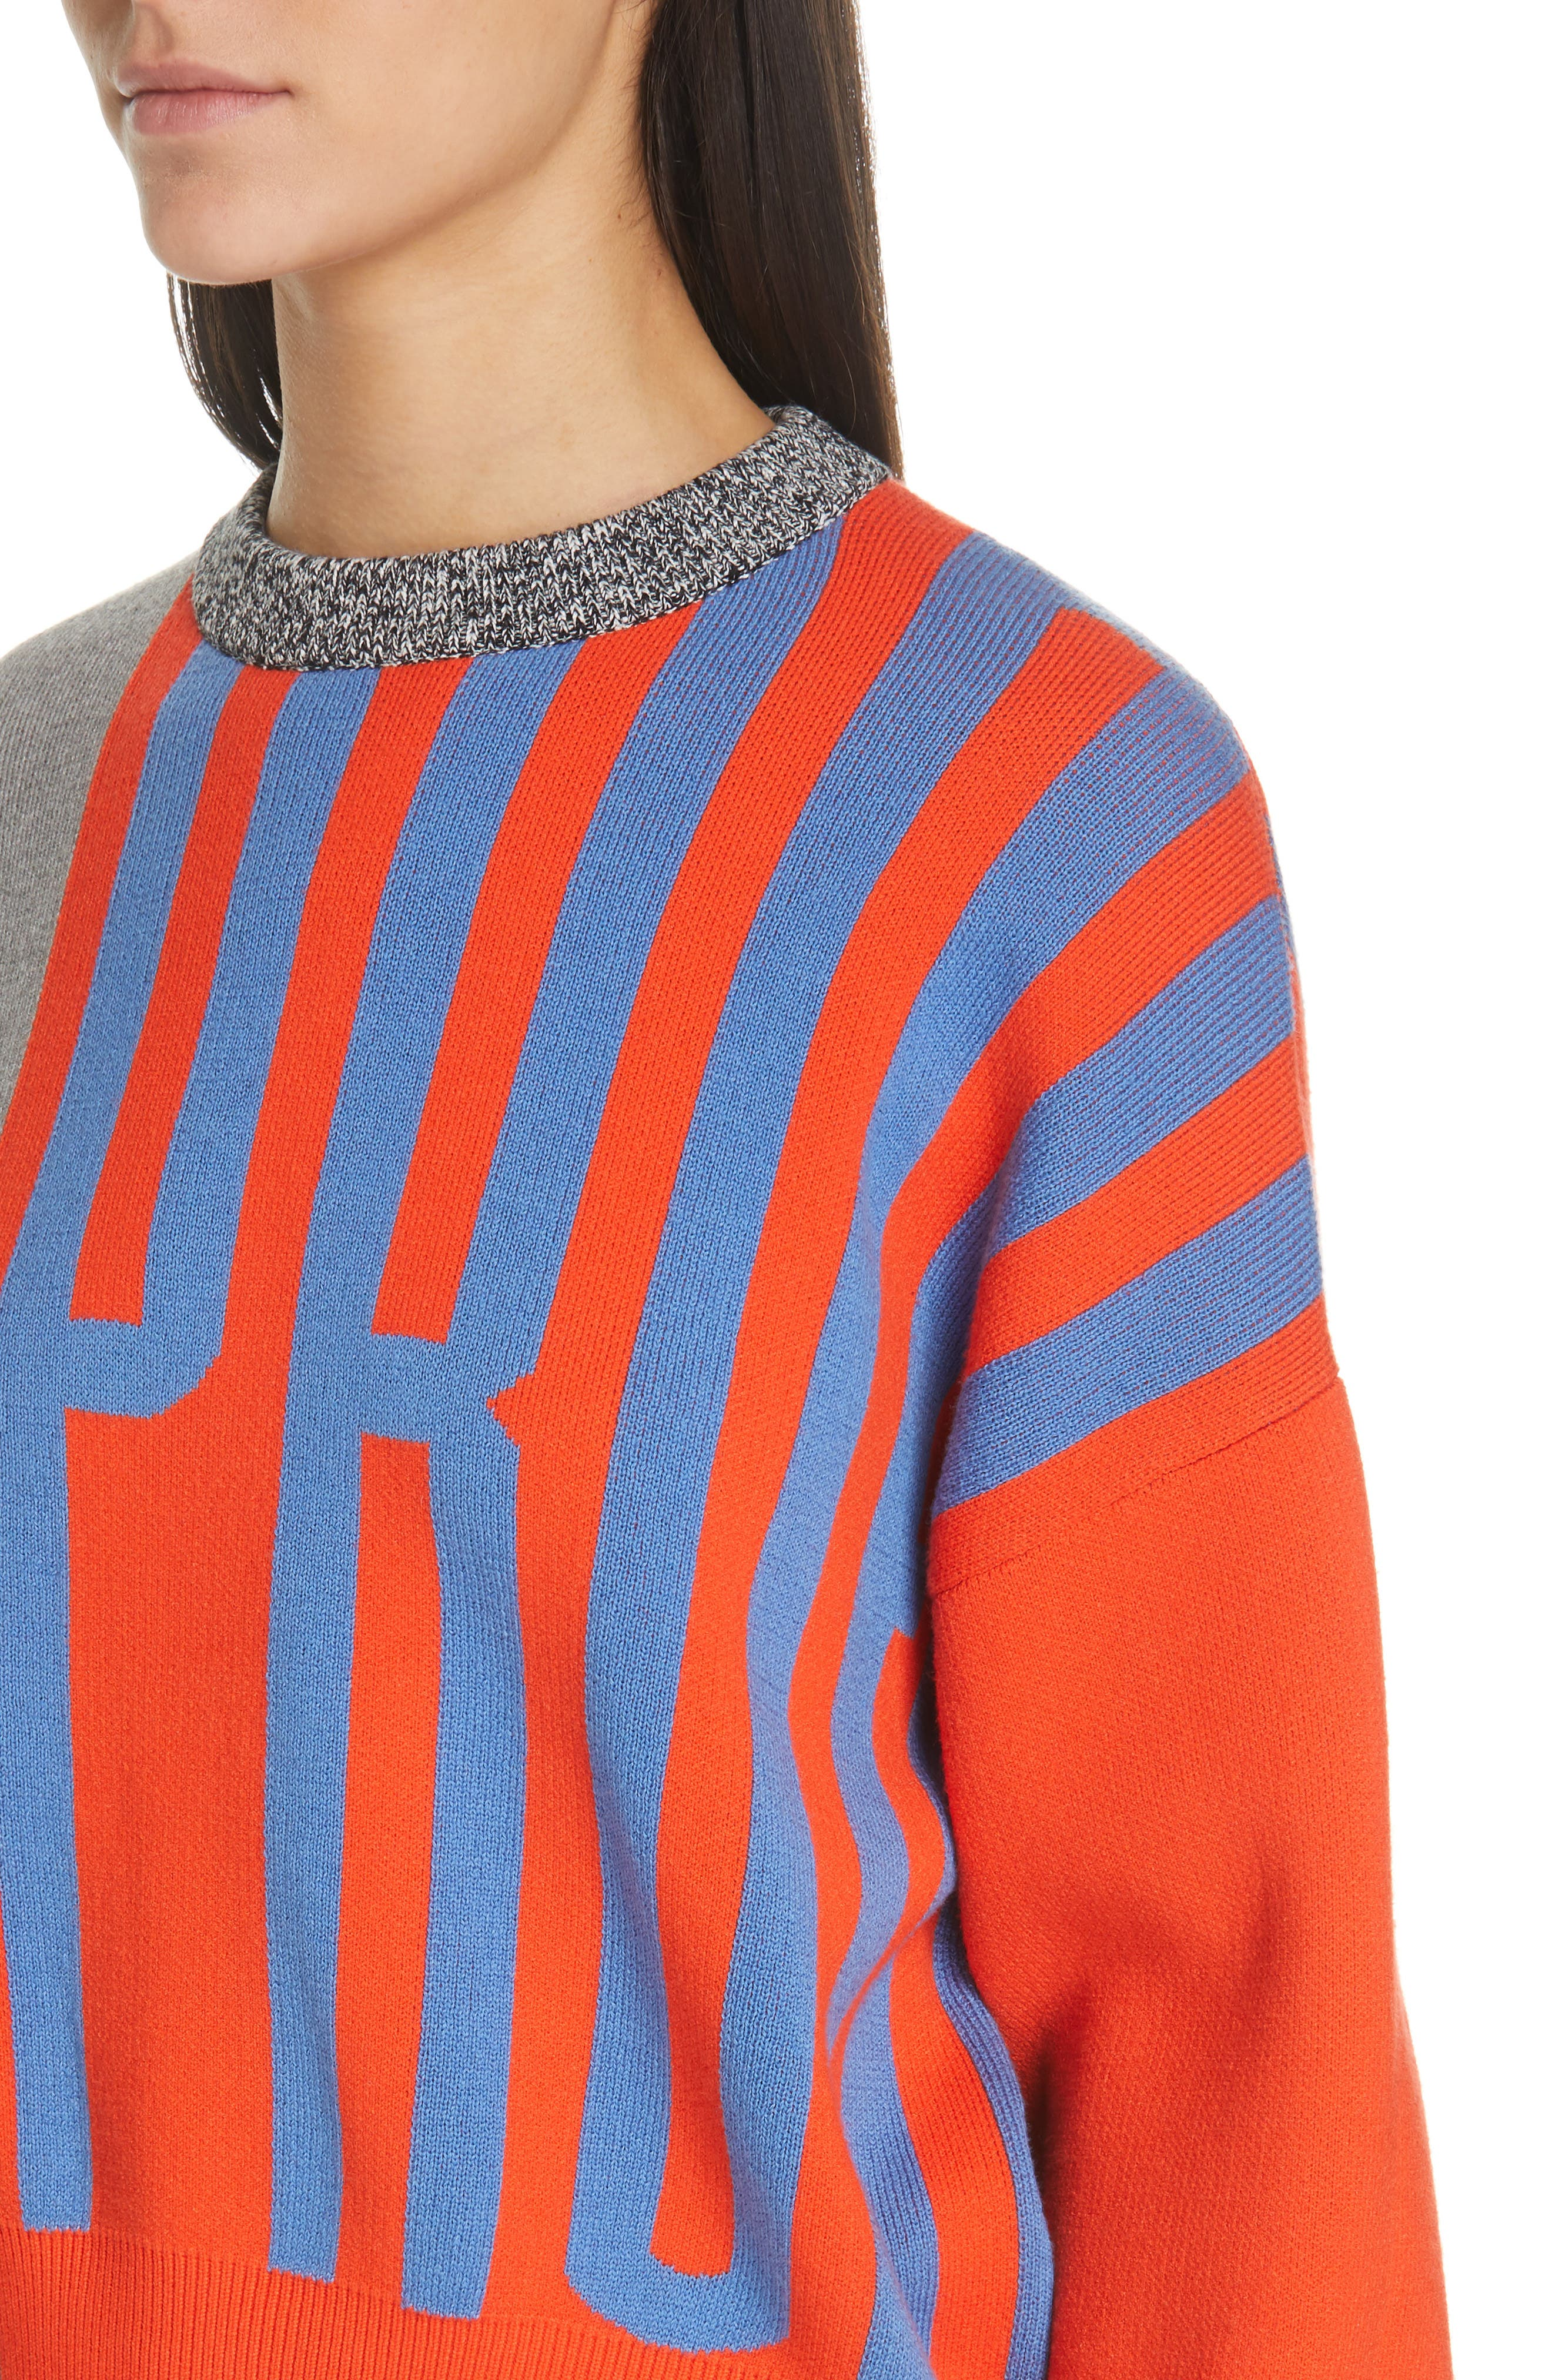 PSWL Graphic Logo Sweater,                             Alternate thumbnail 4, color,                             BRIGHT RED COMBO